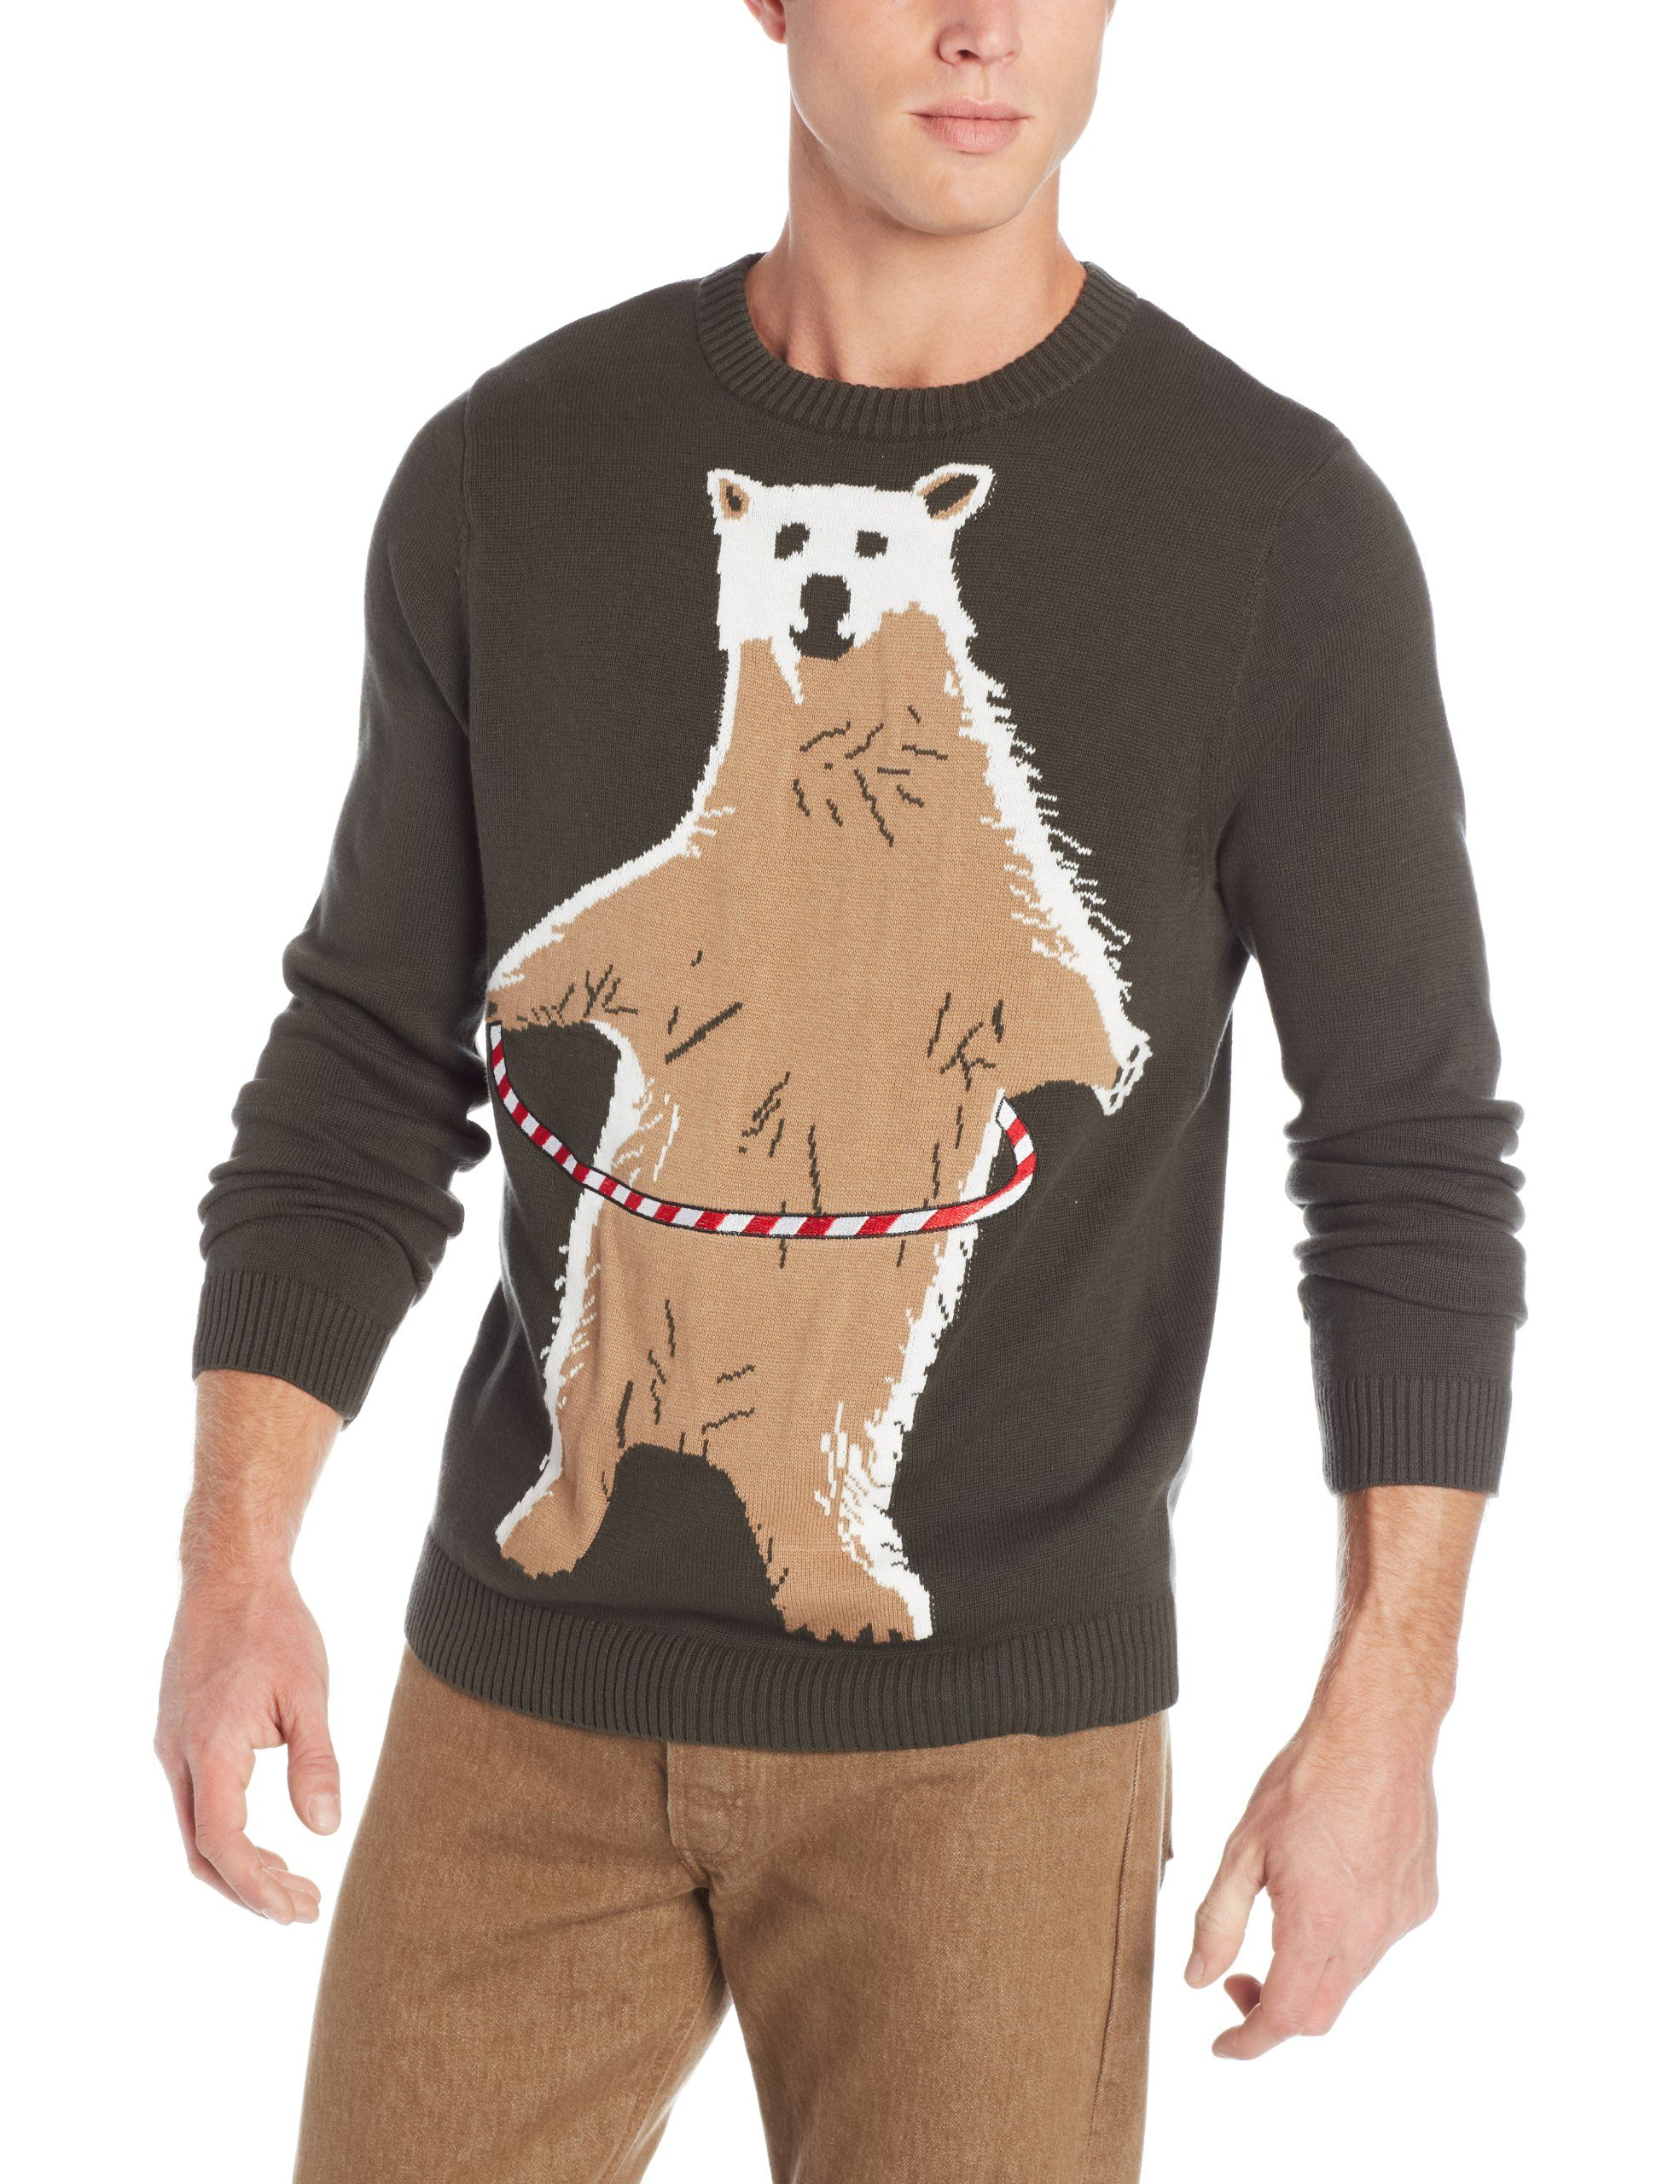 817144290eab Alex Stevens Men s Polar Bear Hula Hoop